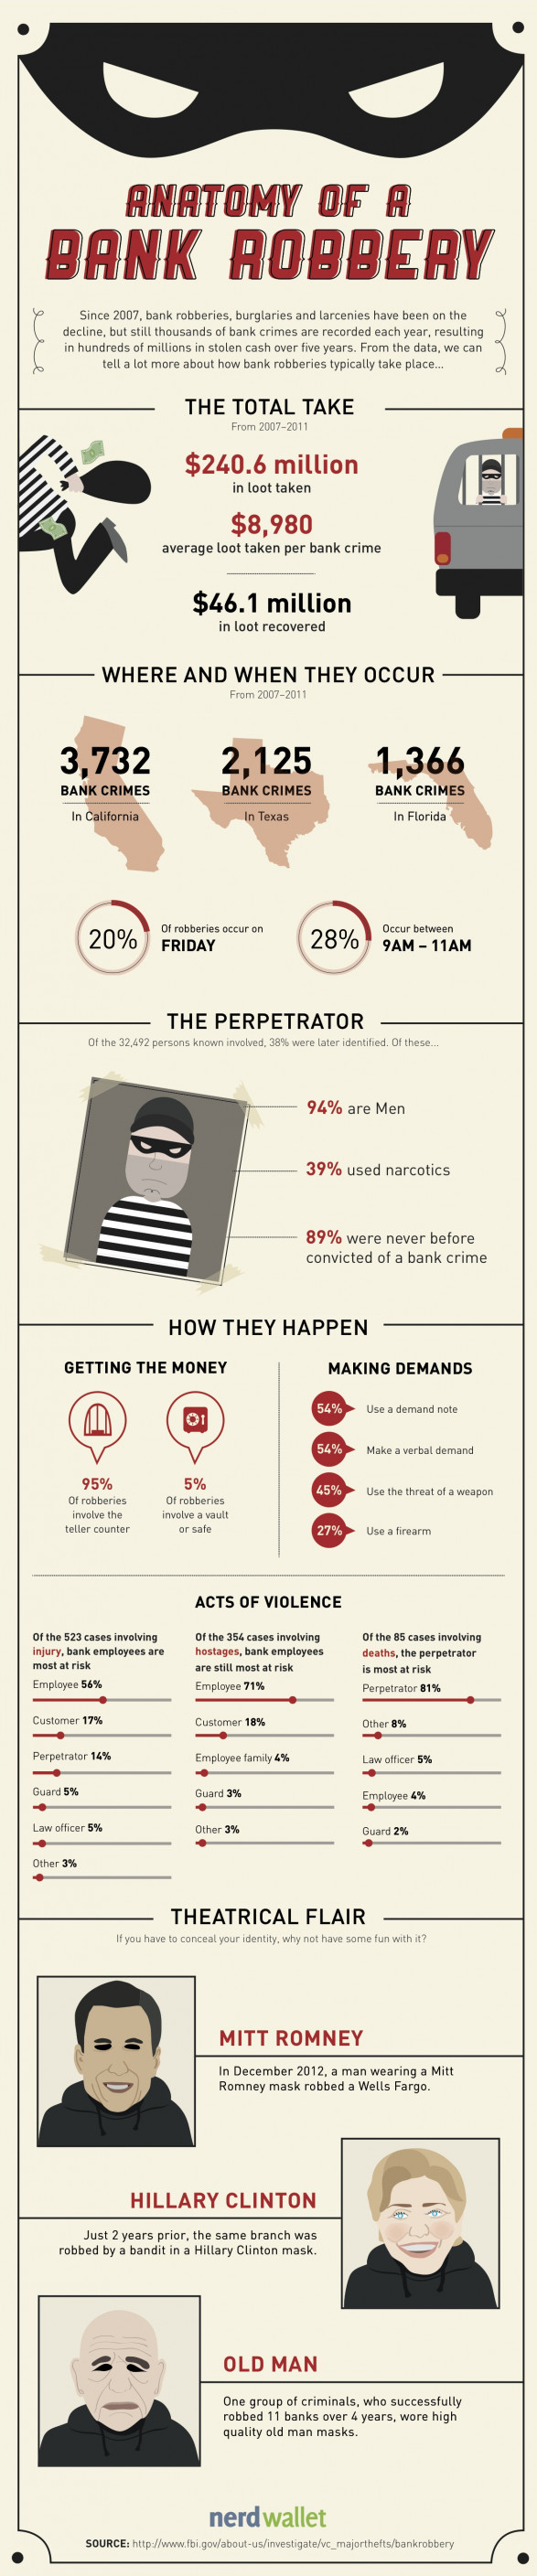 Anatomy of a Bank Robbery